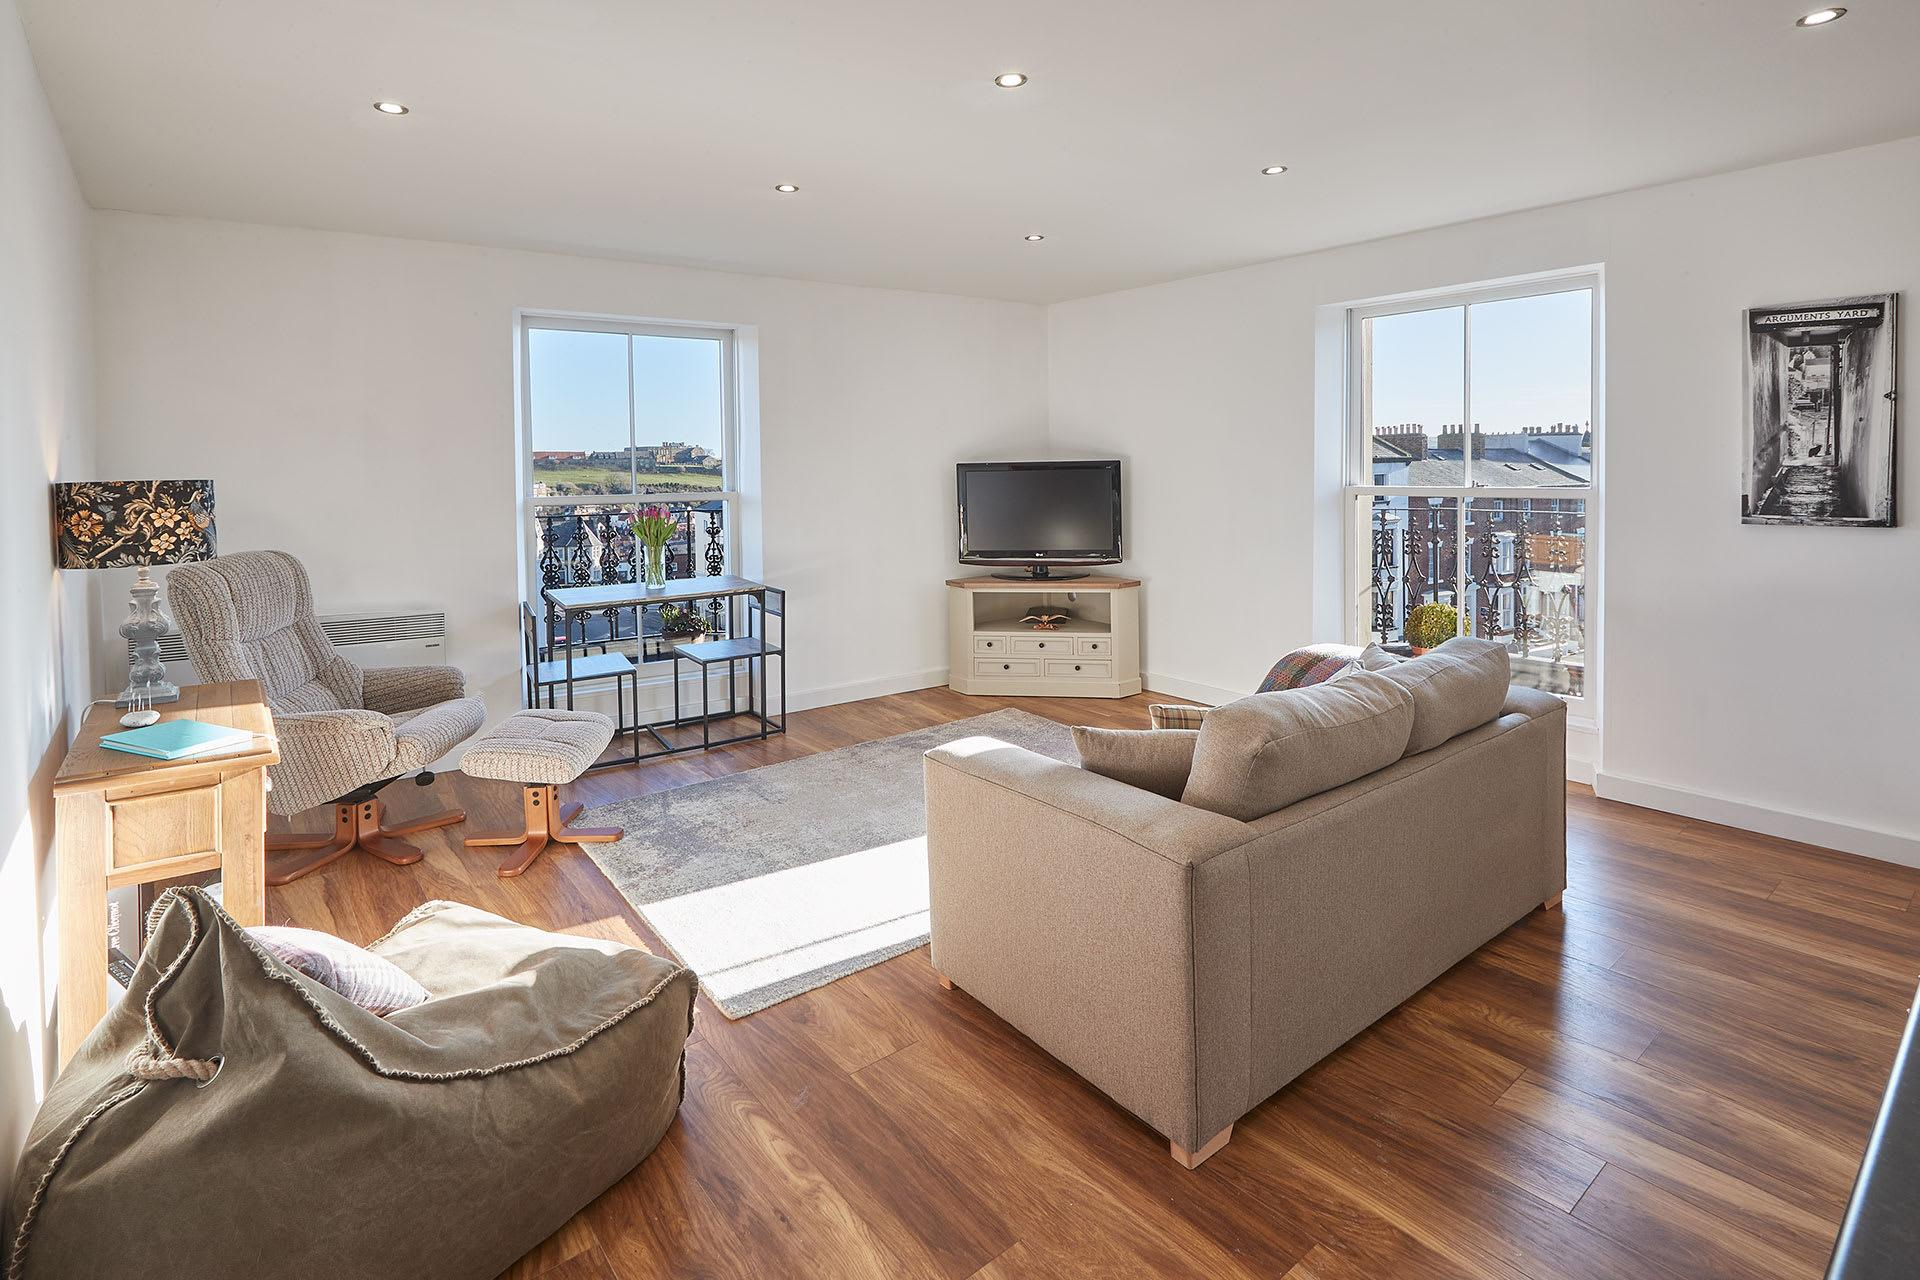 Property Image 1 - Cosy Contemporary 1 Bedroom Apartment Near Beach and Harbour Perfect for a Seaside Escape